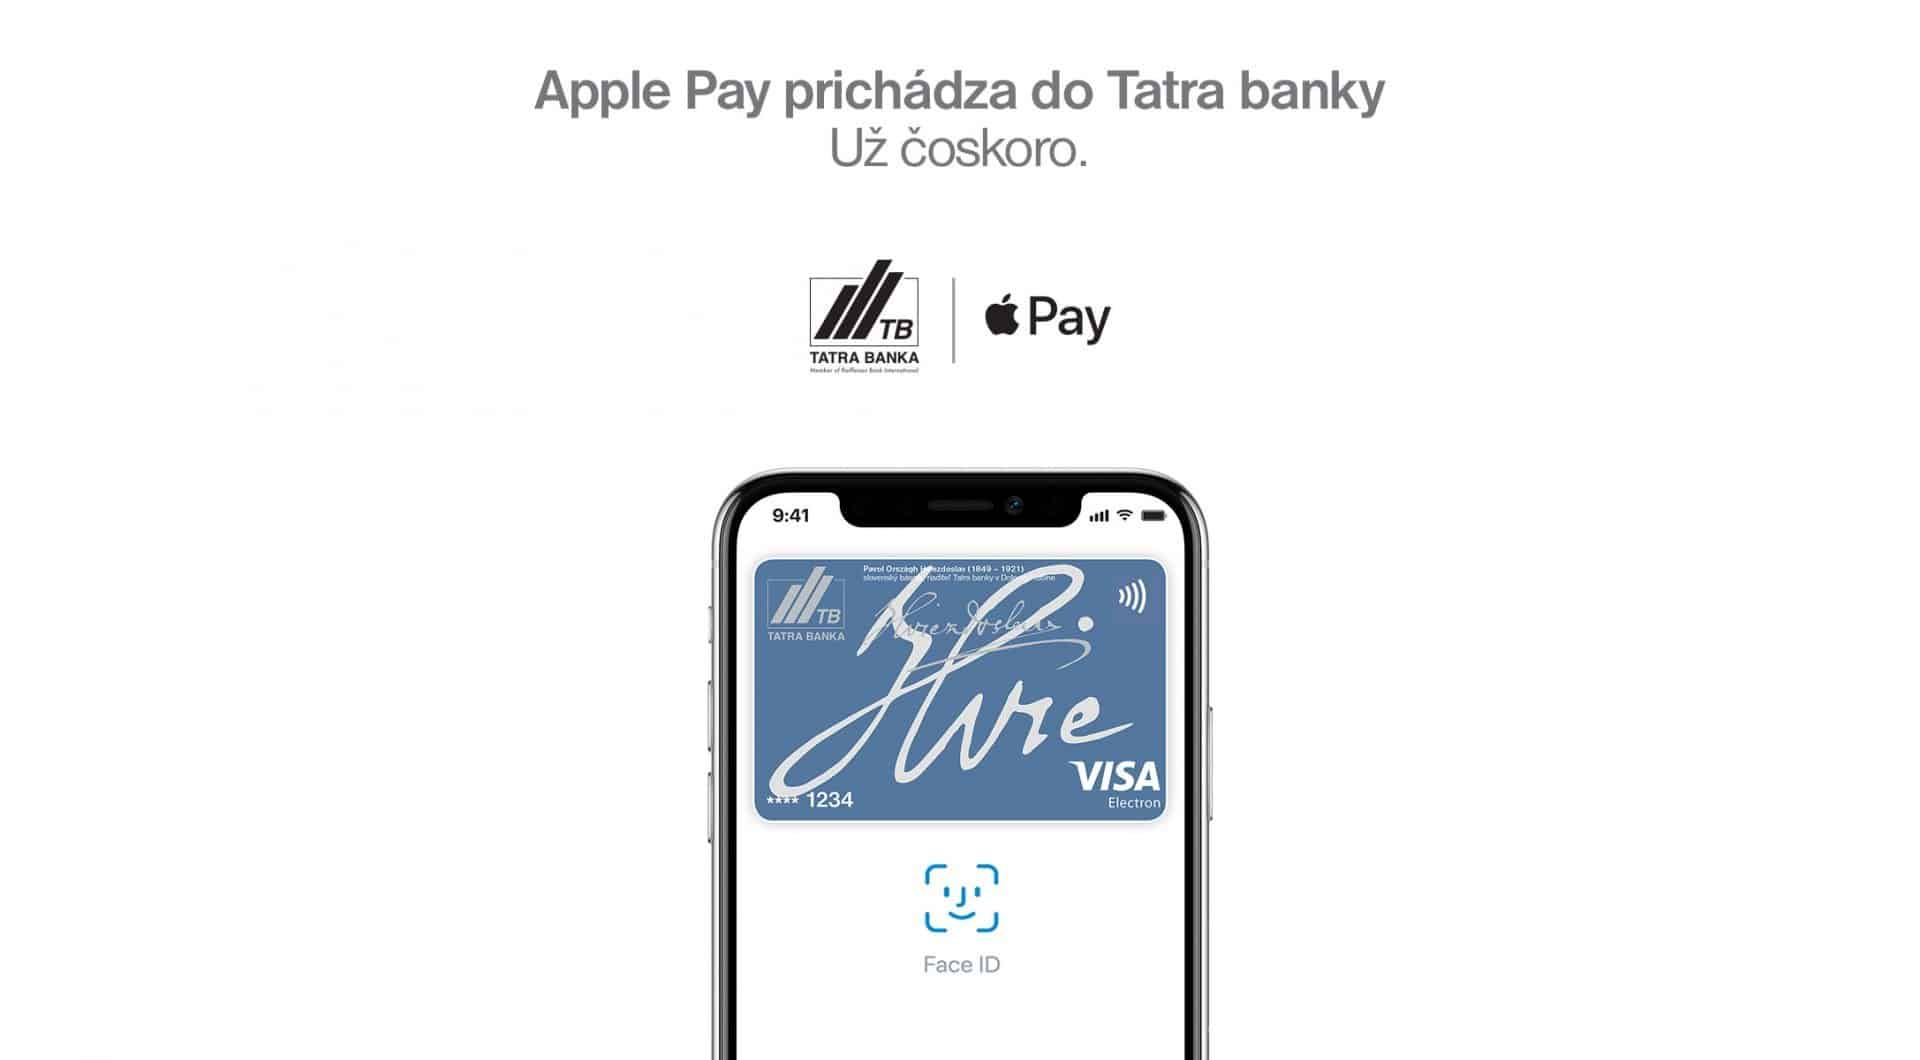 apple pay tatra banka